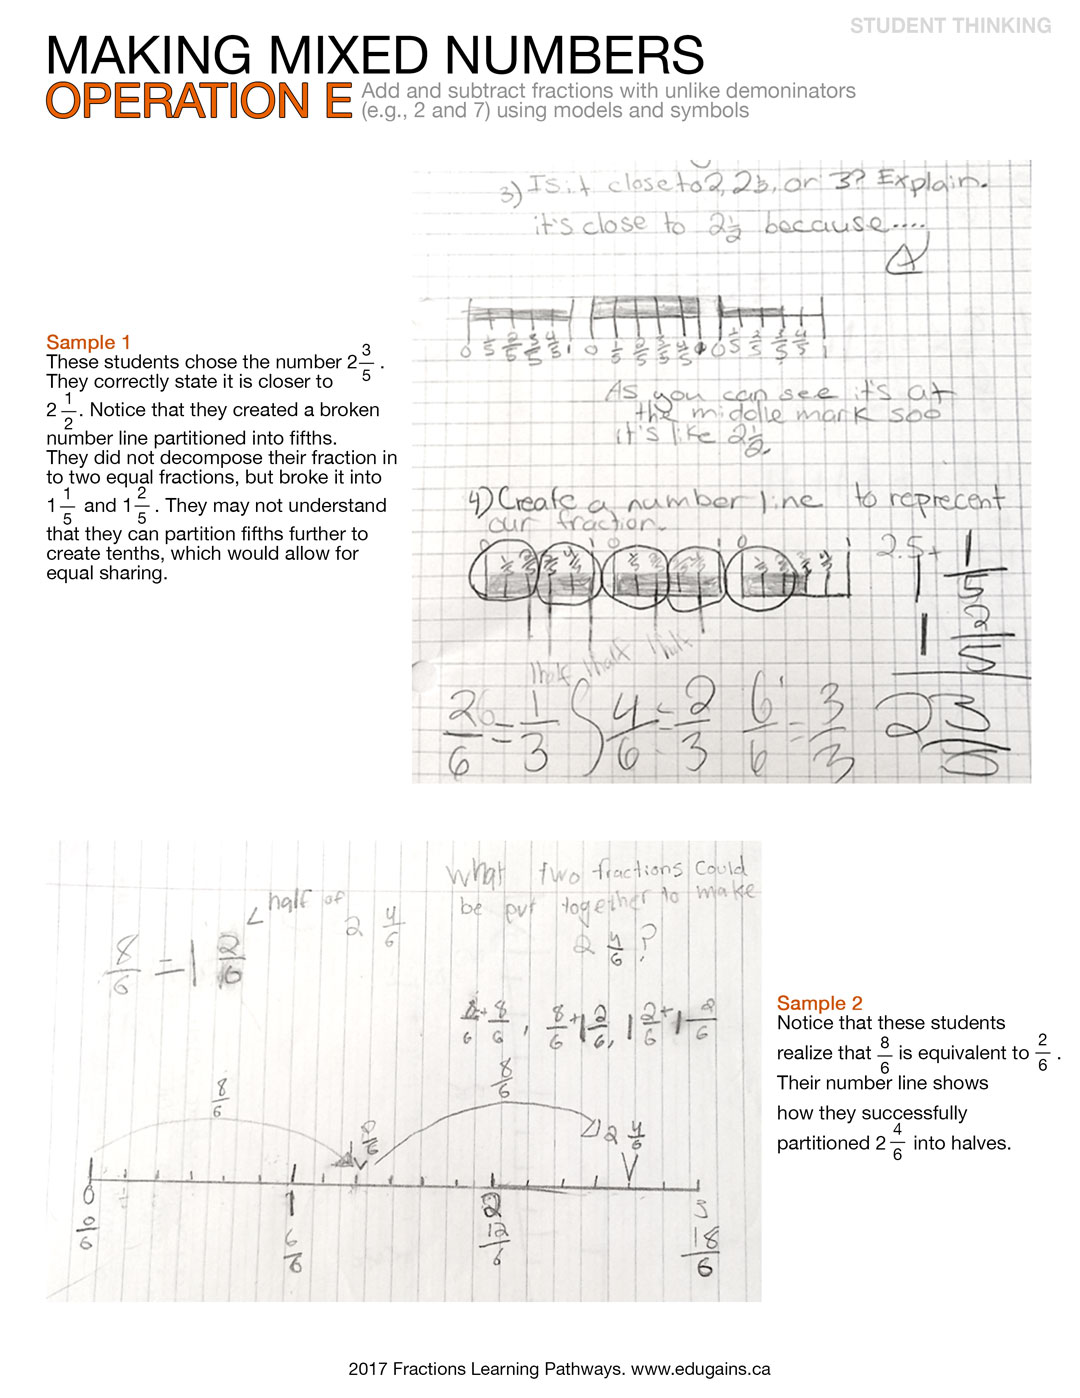 Making Mixed Numbers Studing Thinking